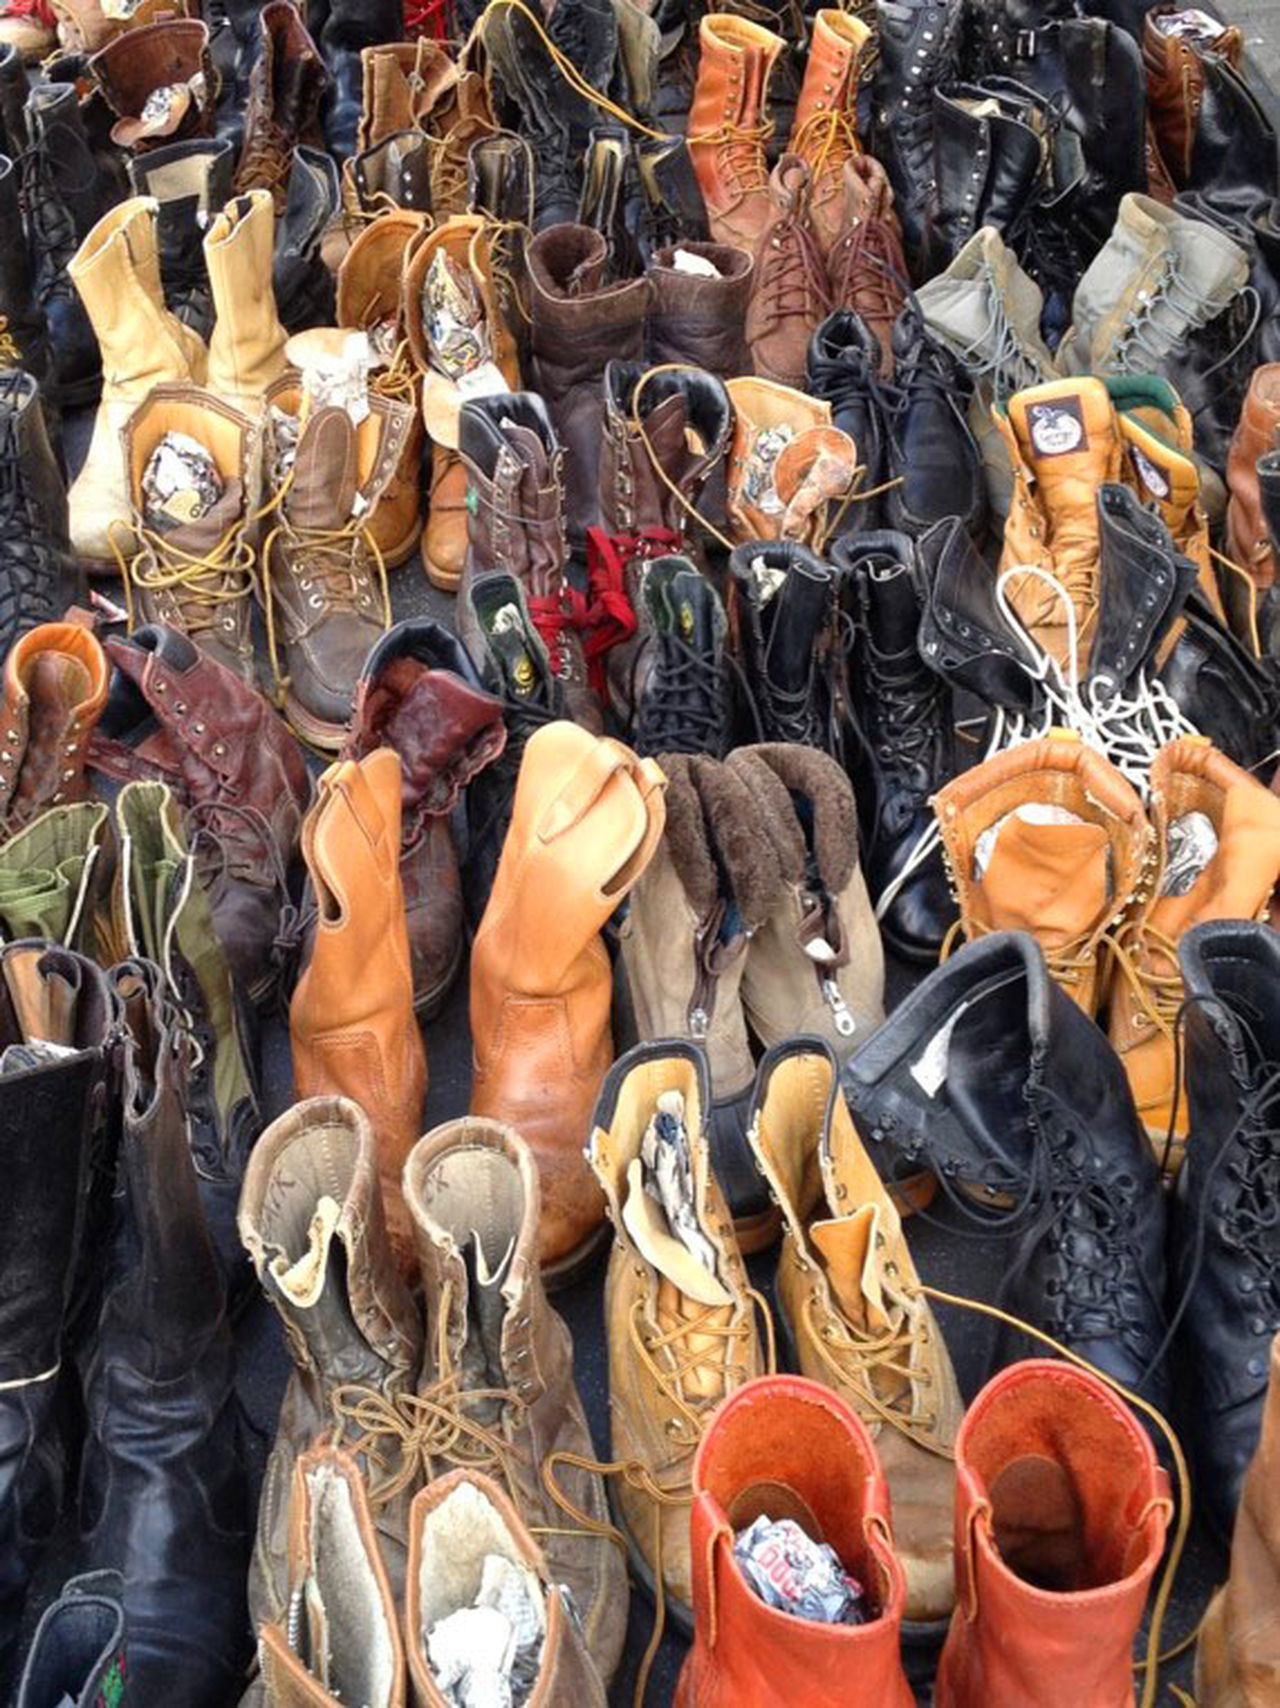 Boots Fashion Large Group Of Objects Mens Boots No People Old Boots Vintage Work Boots